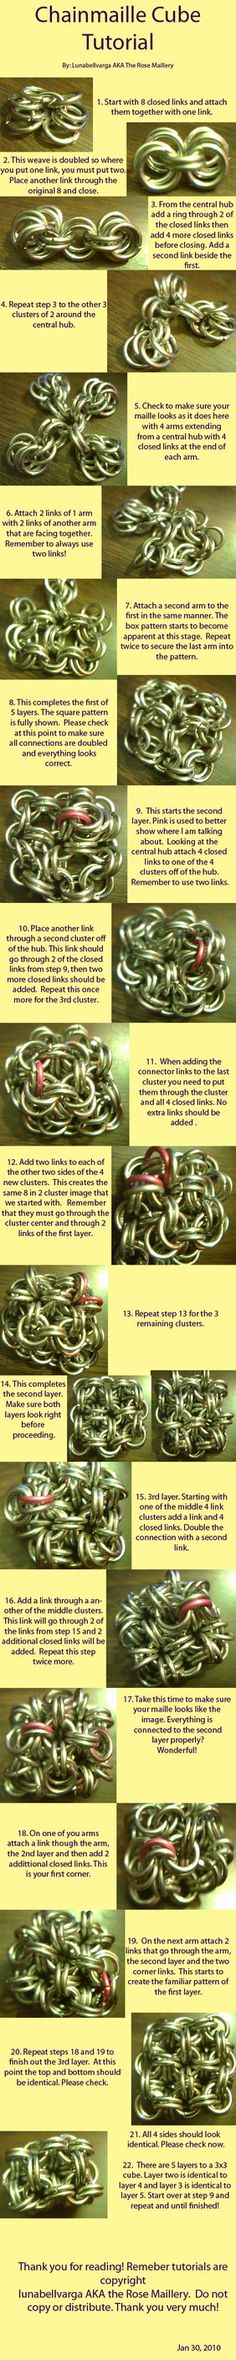 Chainmaille Cube Tutorial by lunabellvarga on DeviantArt